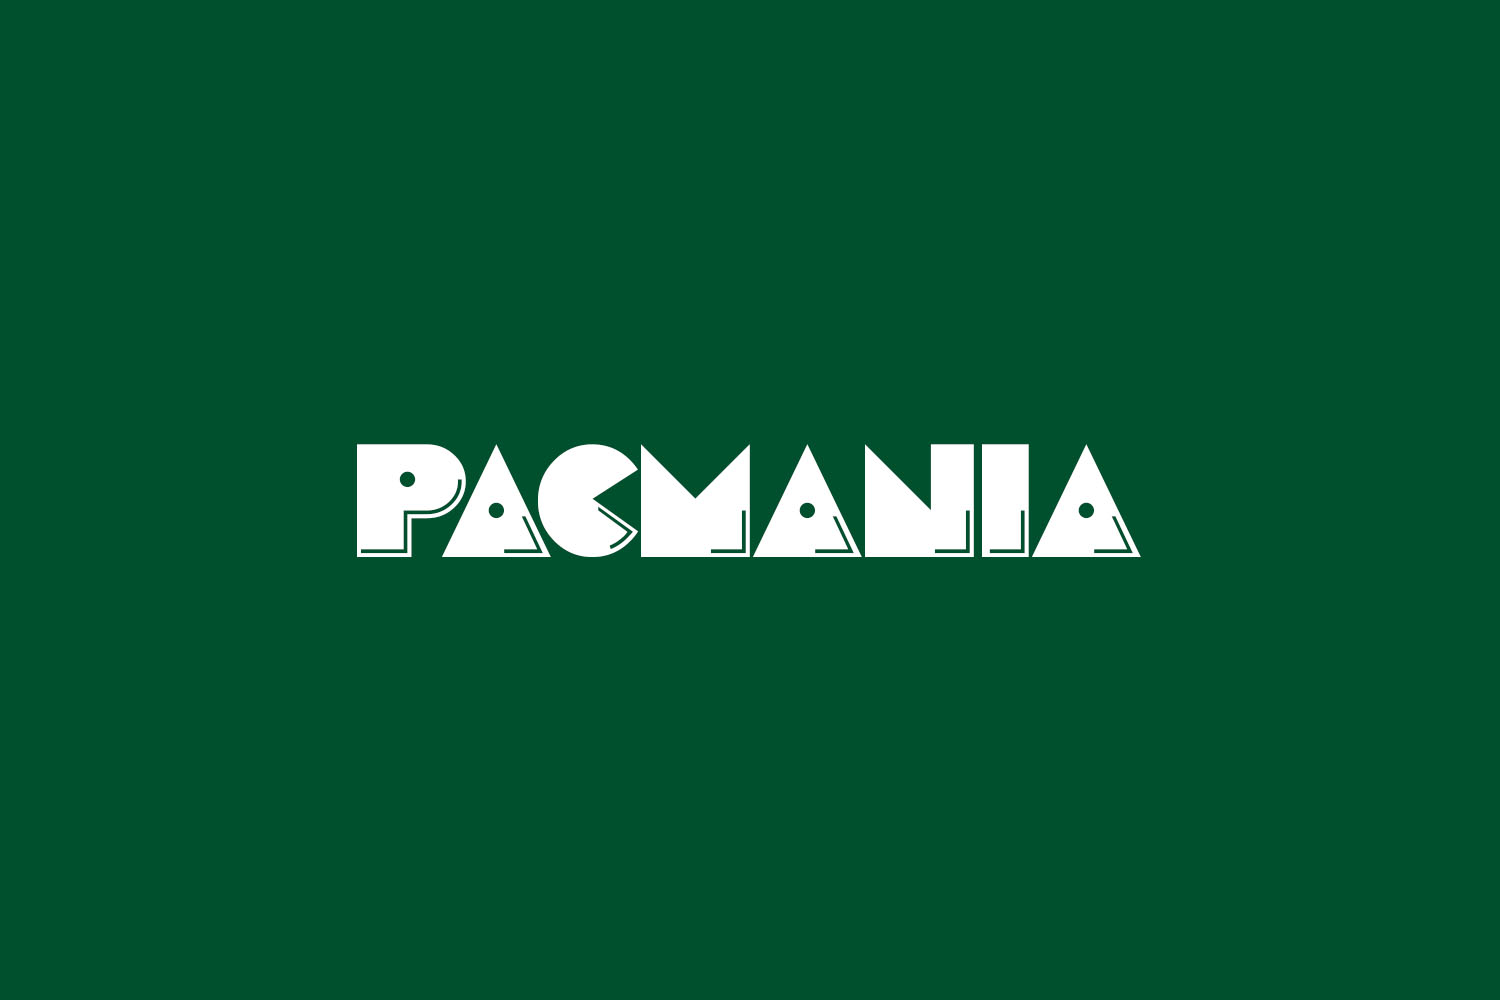 Pacmania Free Font